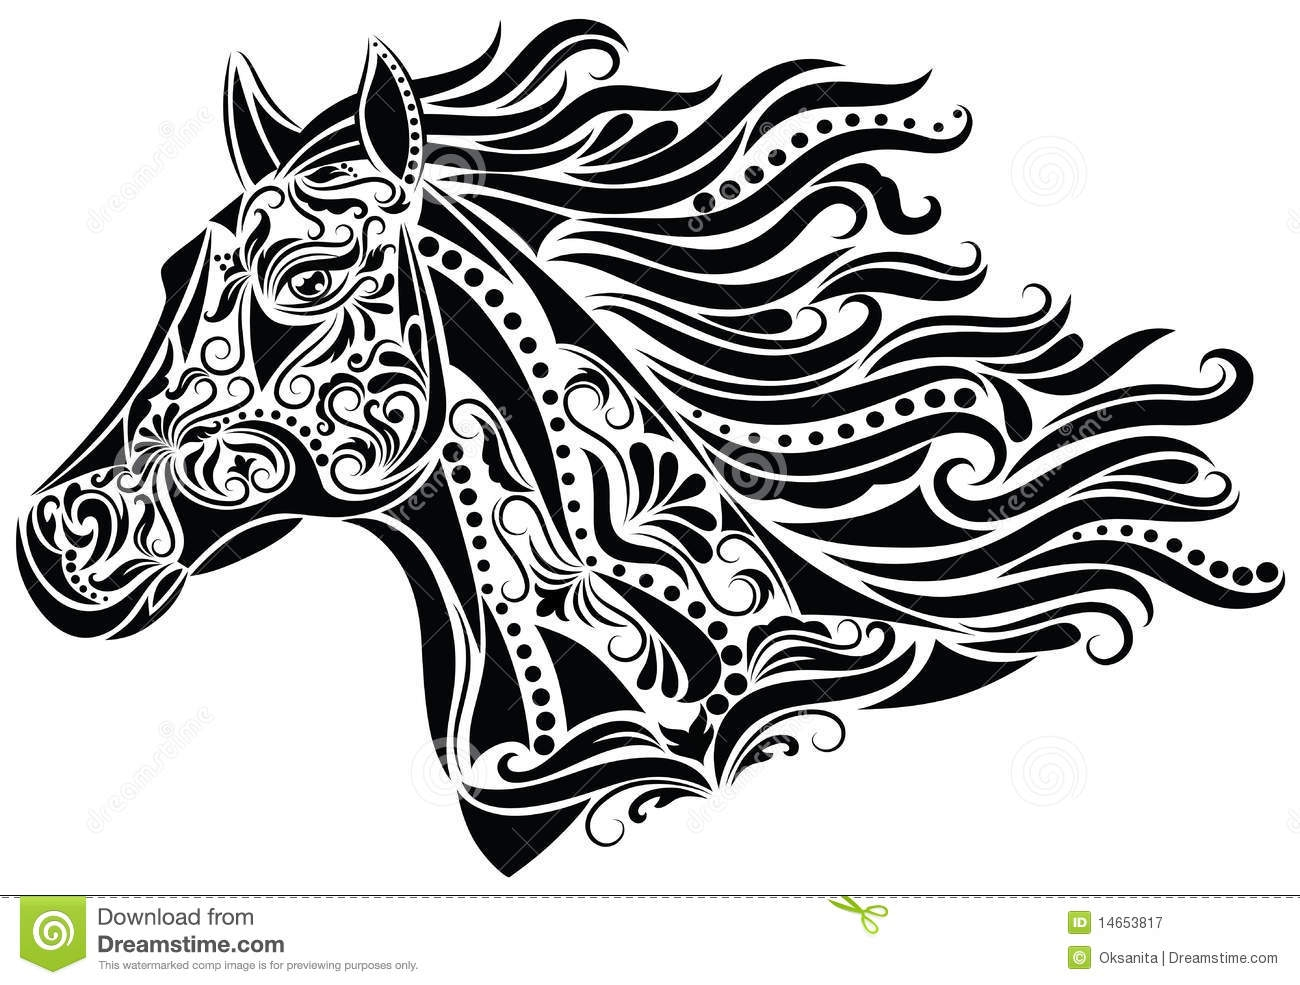 unicorn coloring pages for adults - royalty vrije stock fotografie abstract paard image